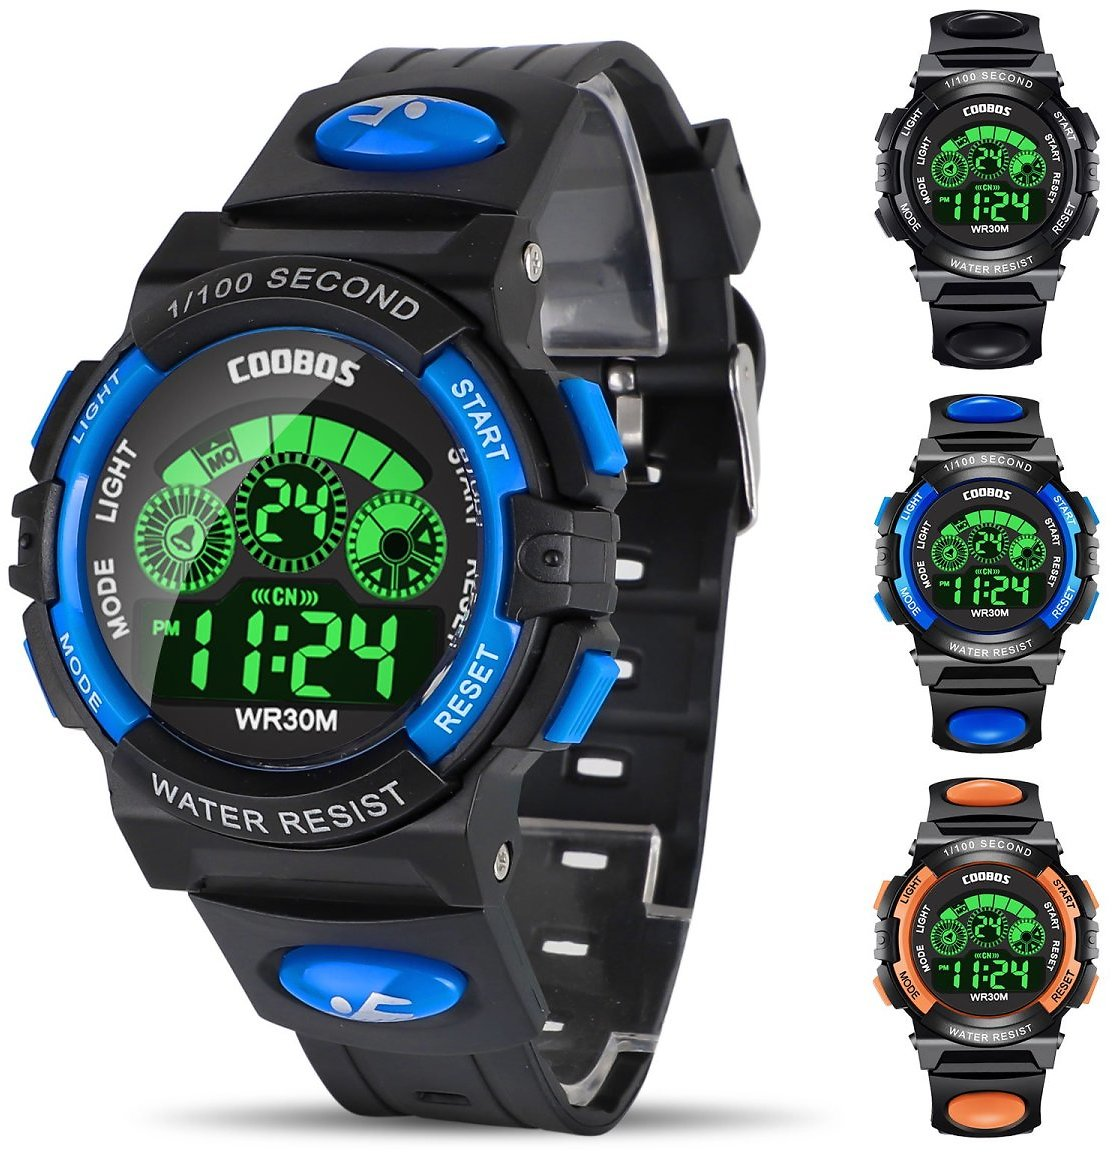 Kids Digital Watch, Boys Sports Waterproof Led Watches with Alarm, Stopwatch, Multifunctional Outdoor Electronic Analog Quartz W